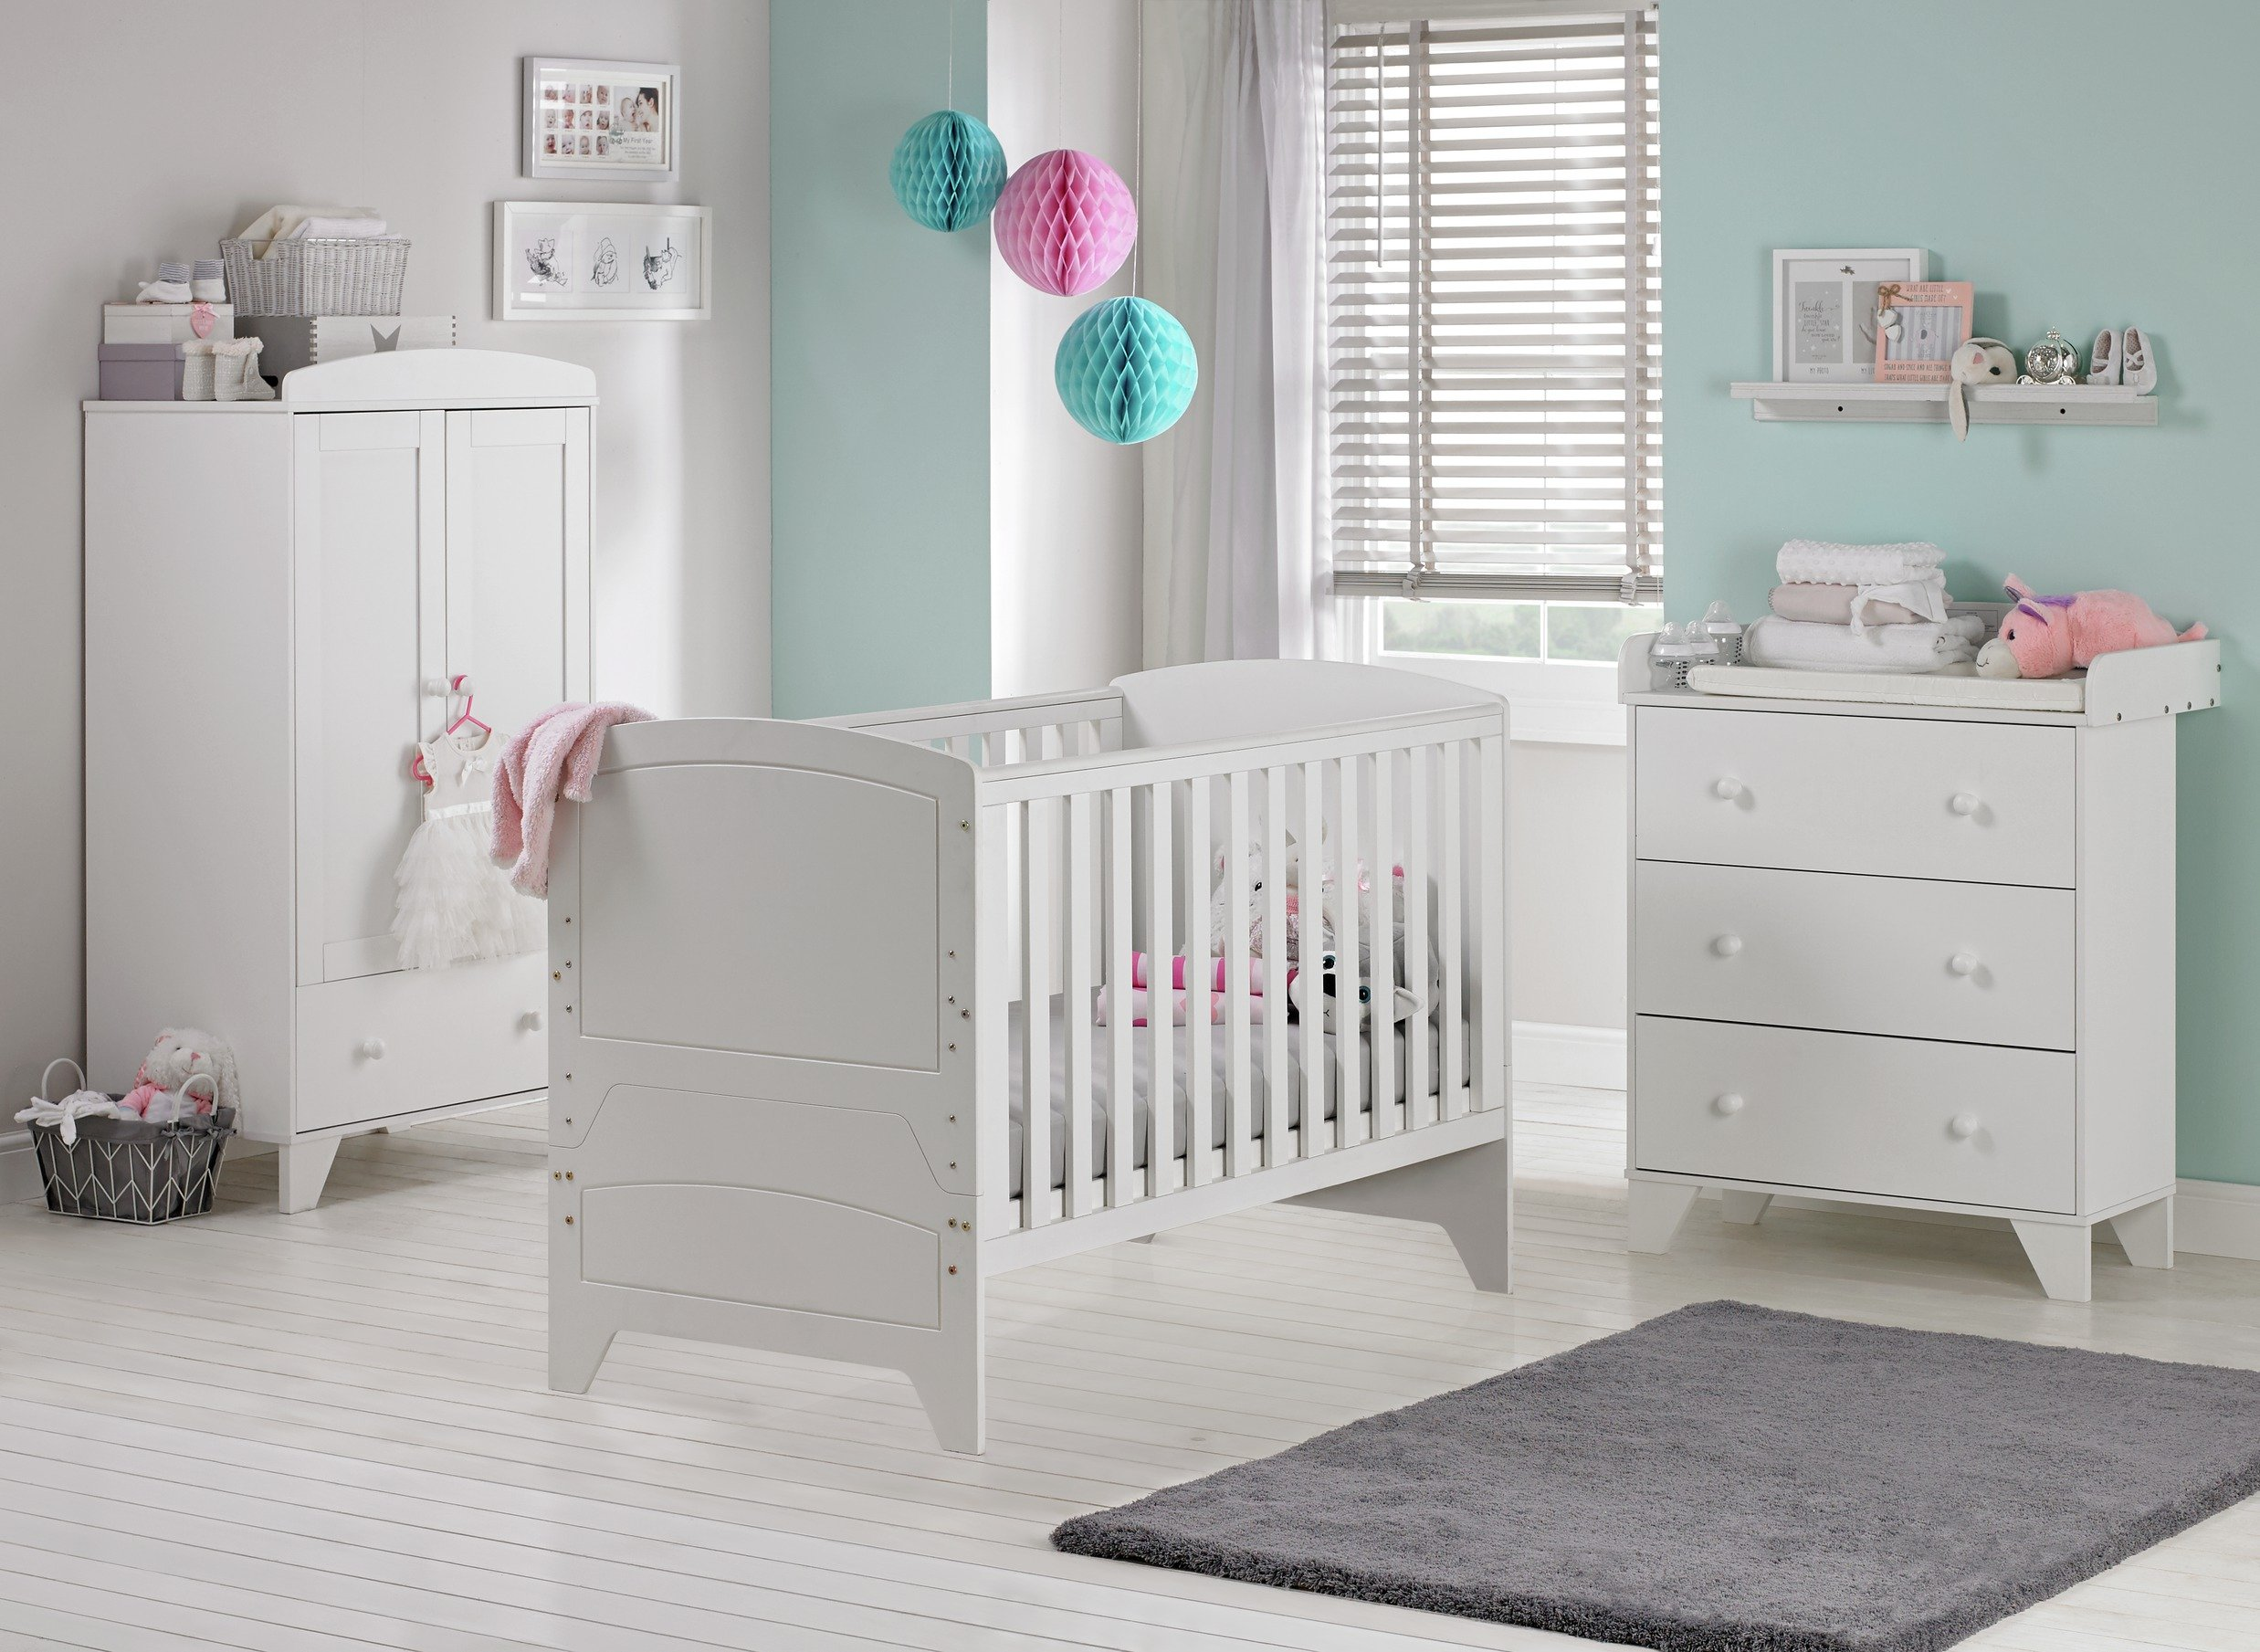 Image of Cuggl Oxford 3 Piece Furniture Set - White